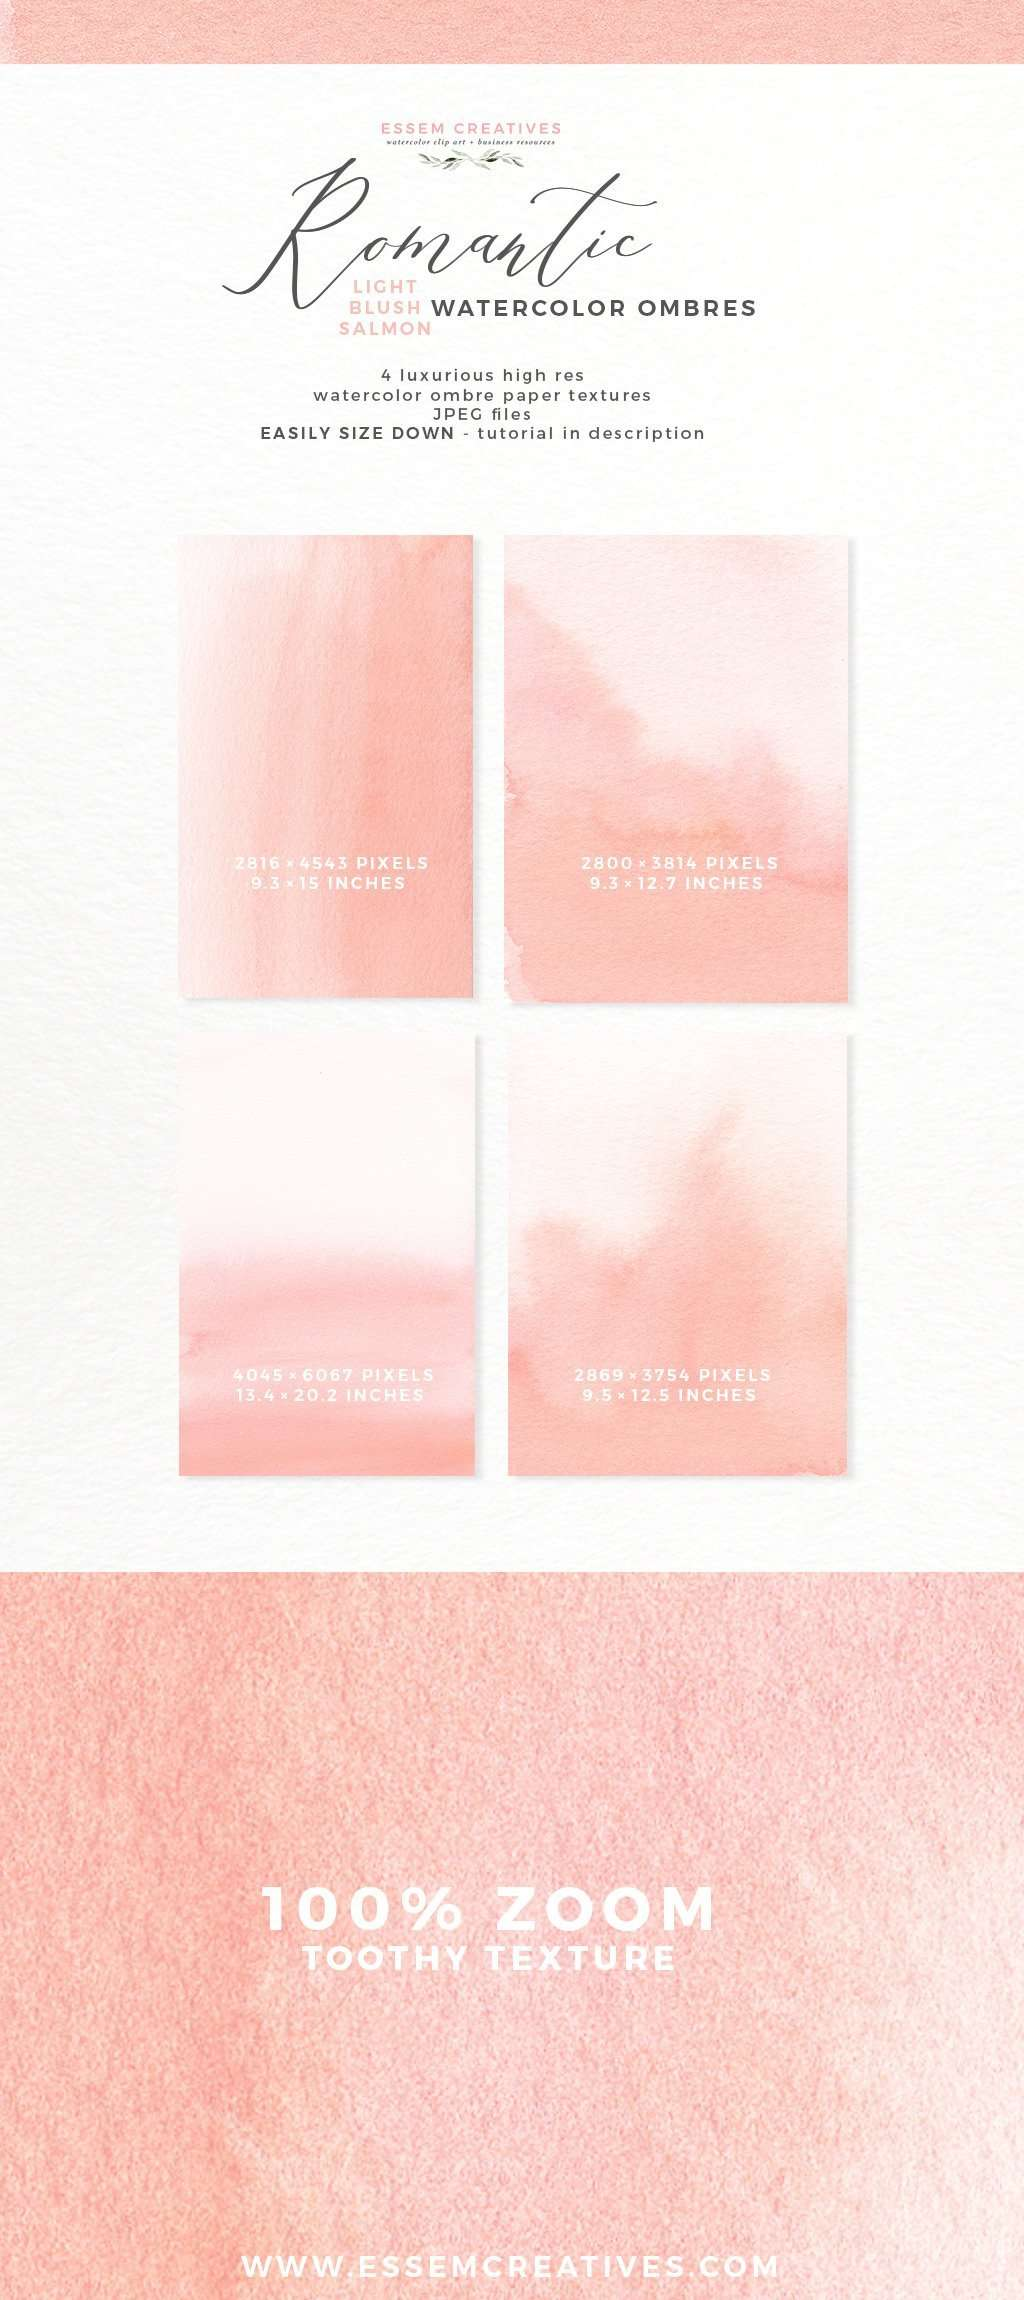 Blush Pink Watercolor Ombre Background | Blush Salmon Digital Papers for Save the Date Wedding Invitations Essem Creatives | Use these luxurious romantic delicate and wispy watercolor textures to create your own modern stationery & wedding paper. You can now create one of a kind enchanting whimsical abstract watercolor designs in under 10 mins. Instant download also available for commercial use. Click to see more>>